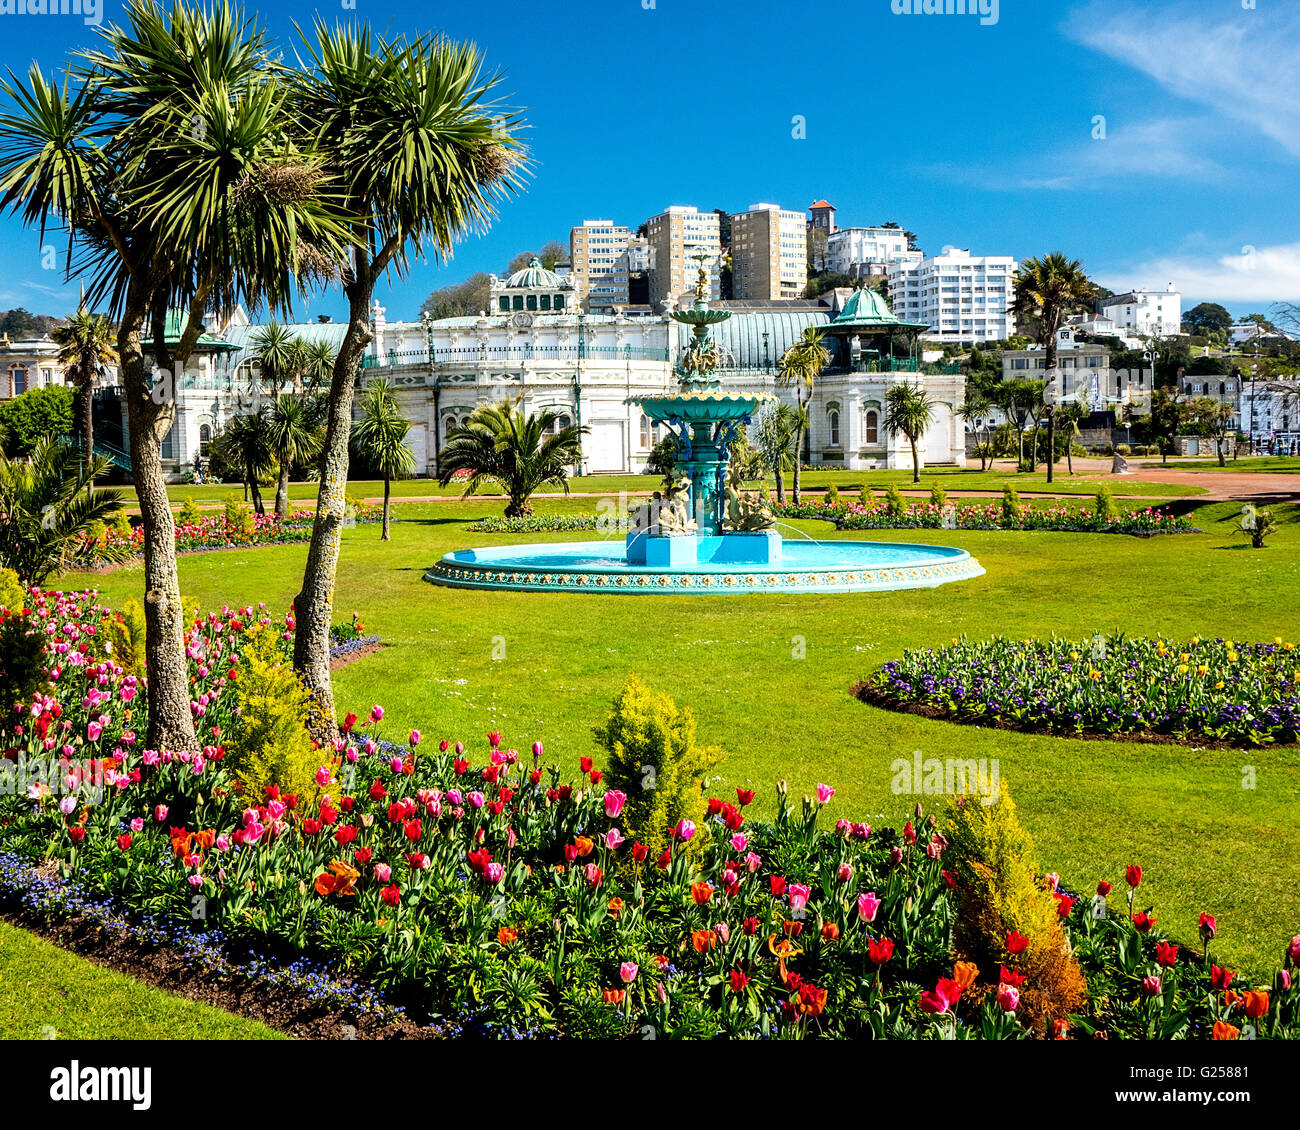 GB - DEVON: Princess Gardens and Pavilion, Torquay, English Riviera - Stock Image